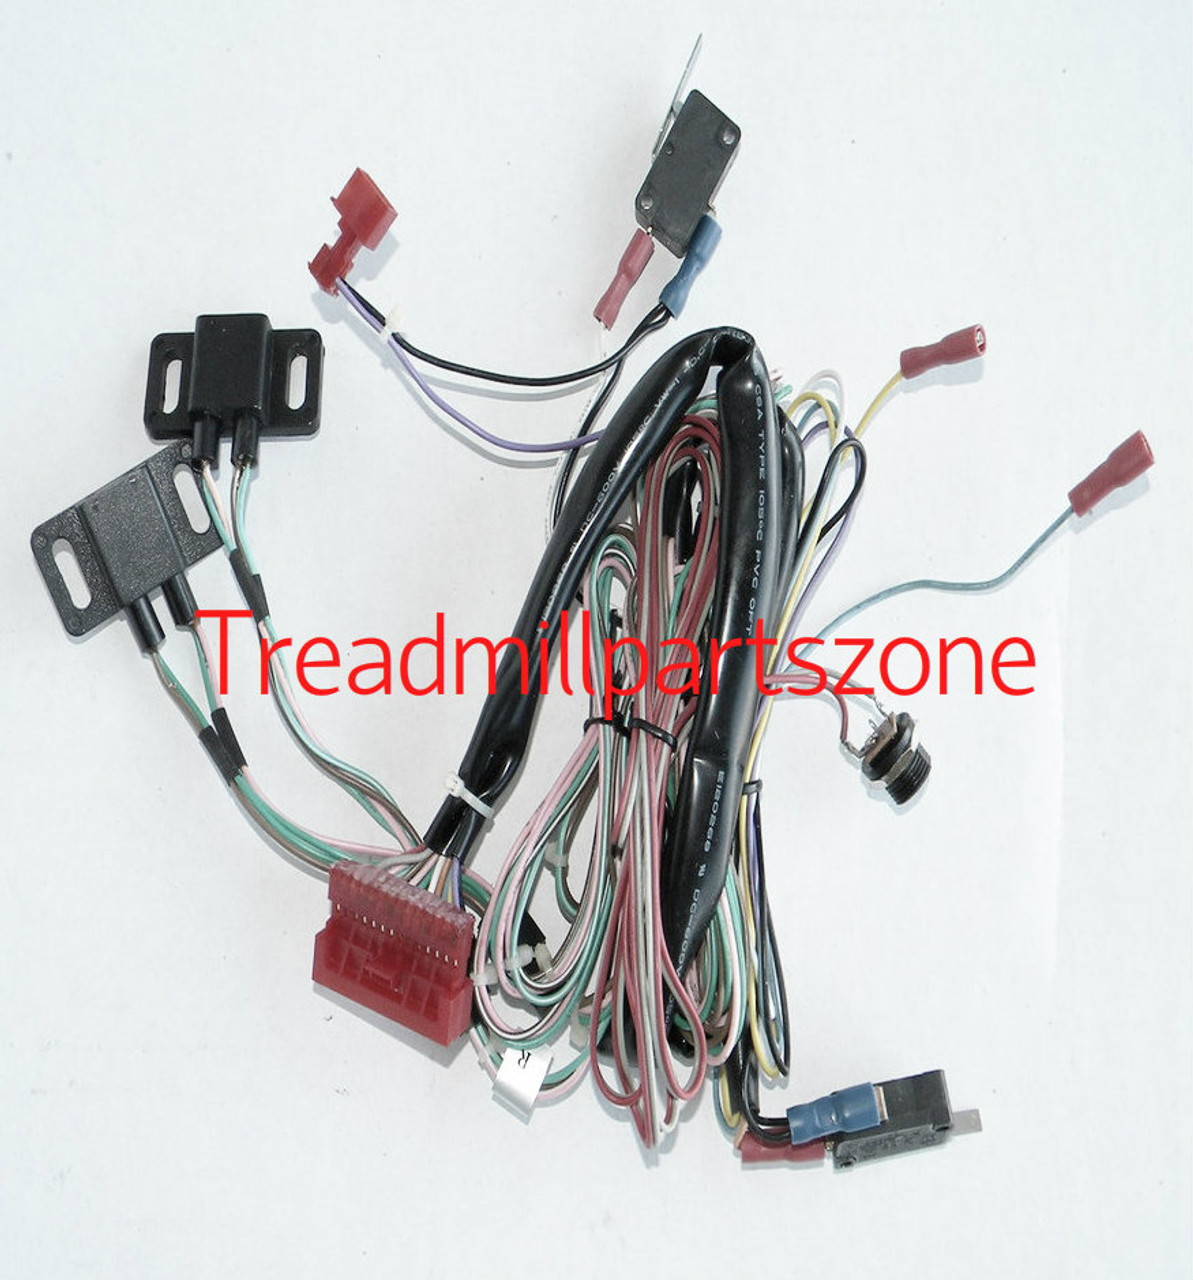 weider weight station lower wiring harness part number 212170 Wiring Harness Vt600cd2005